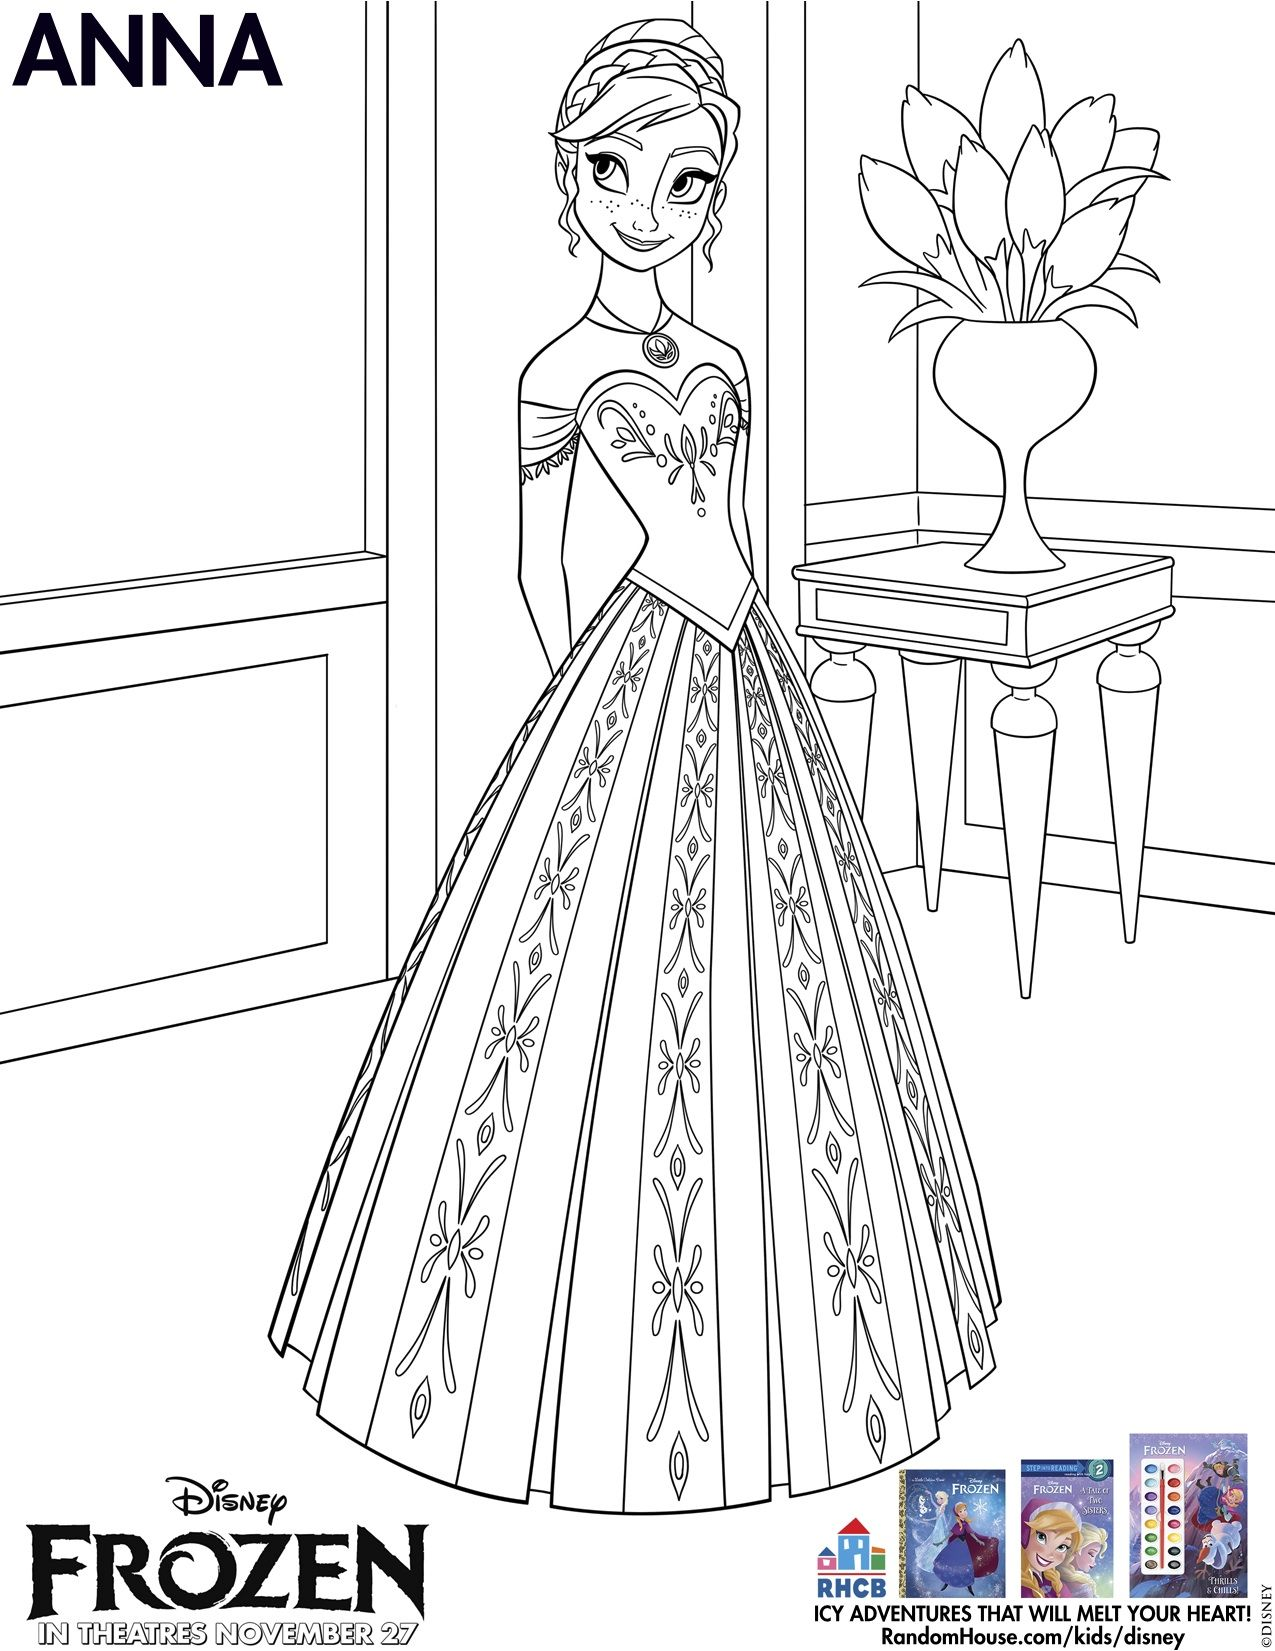 disney frozen free printables coloring pages and activity sheets disney - Kids Activity Sheet